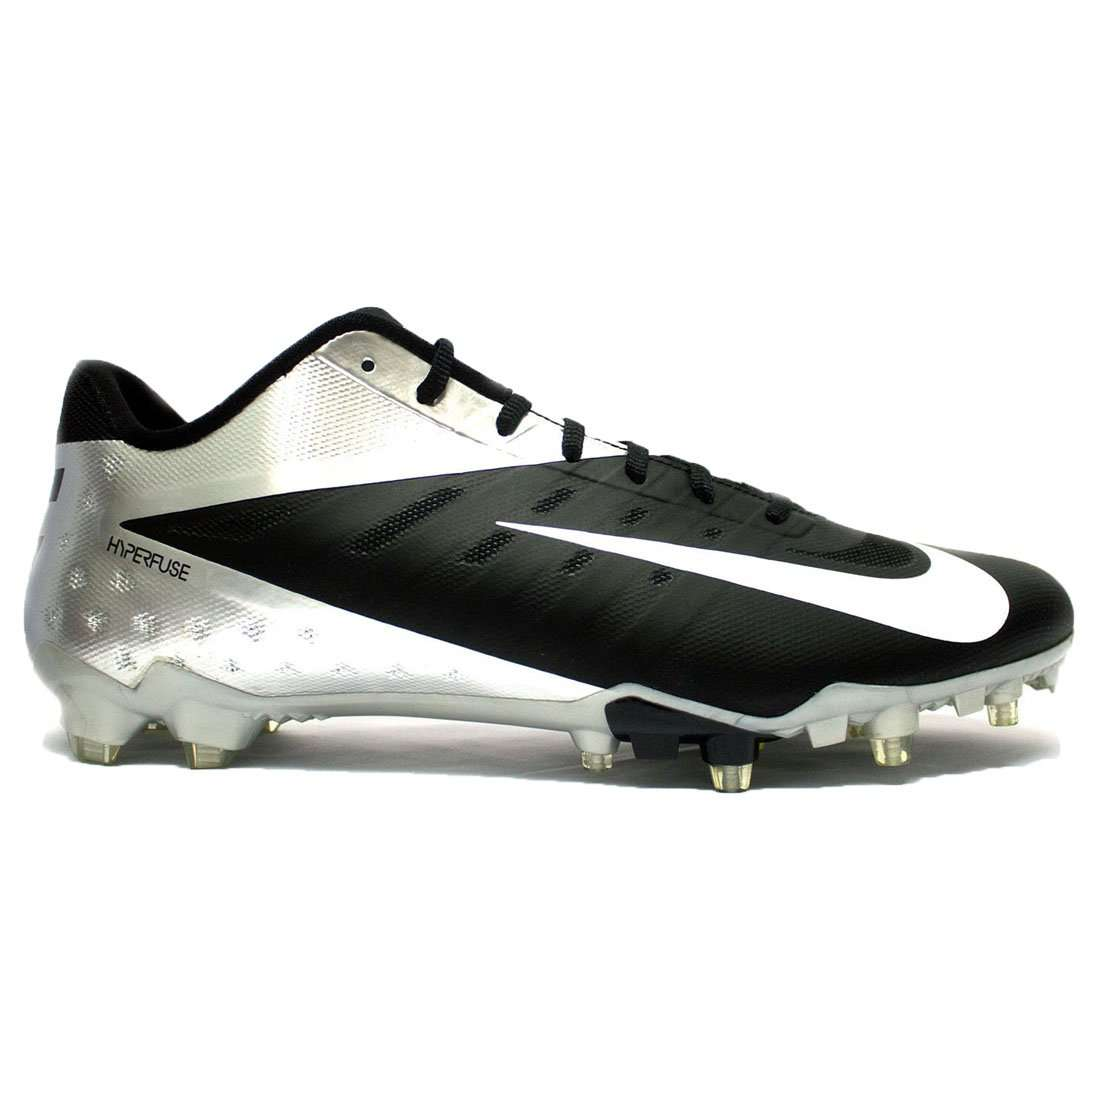 ed8a544b8005 Nike Vapor Talon Elite Low | Nike Vapor Talon Elite Low TD – League ...